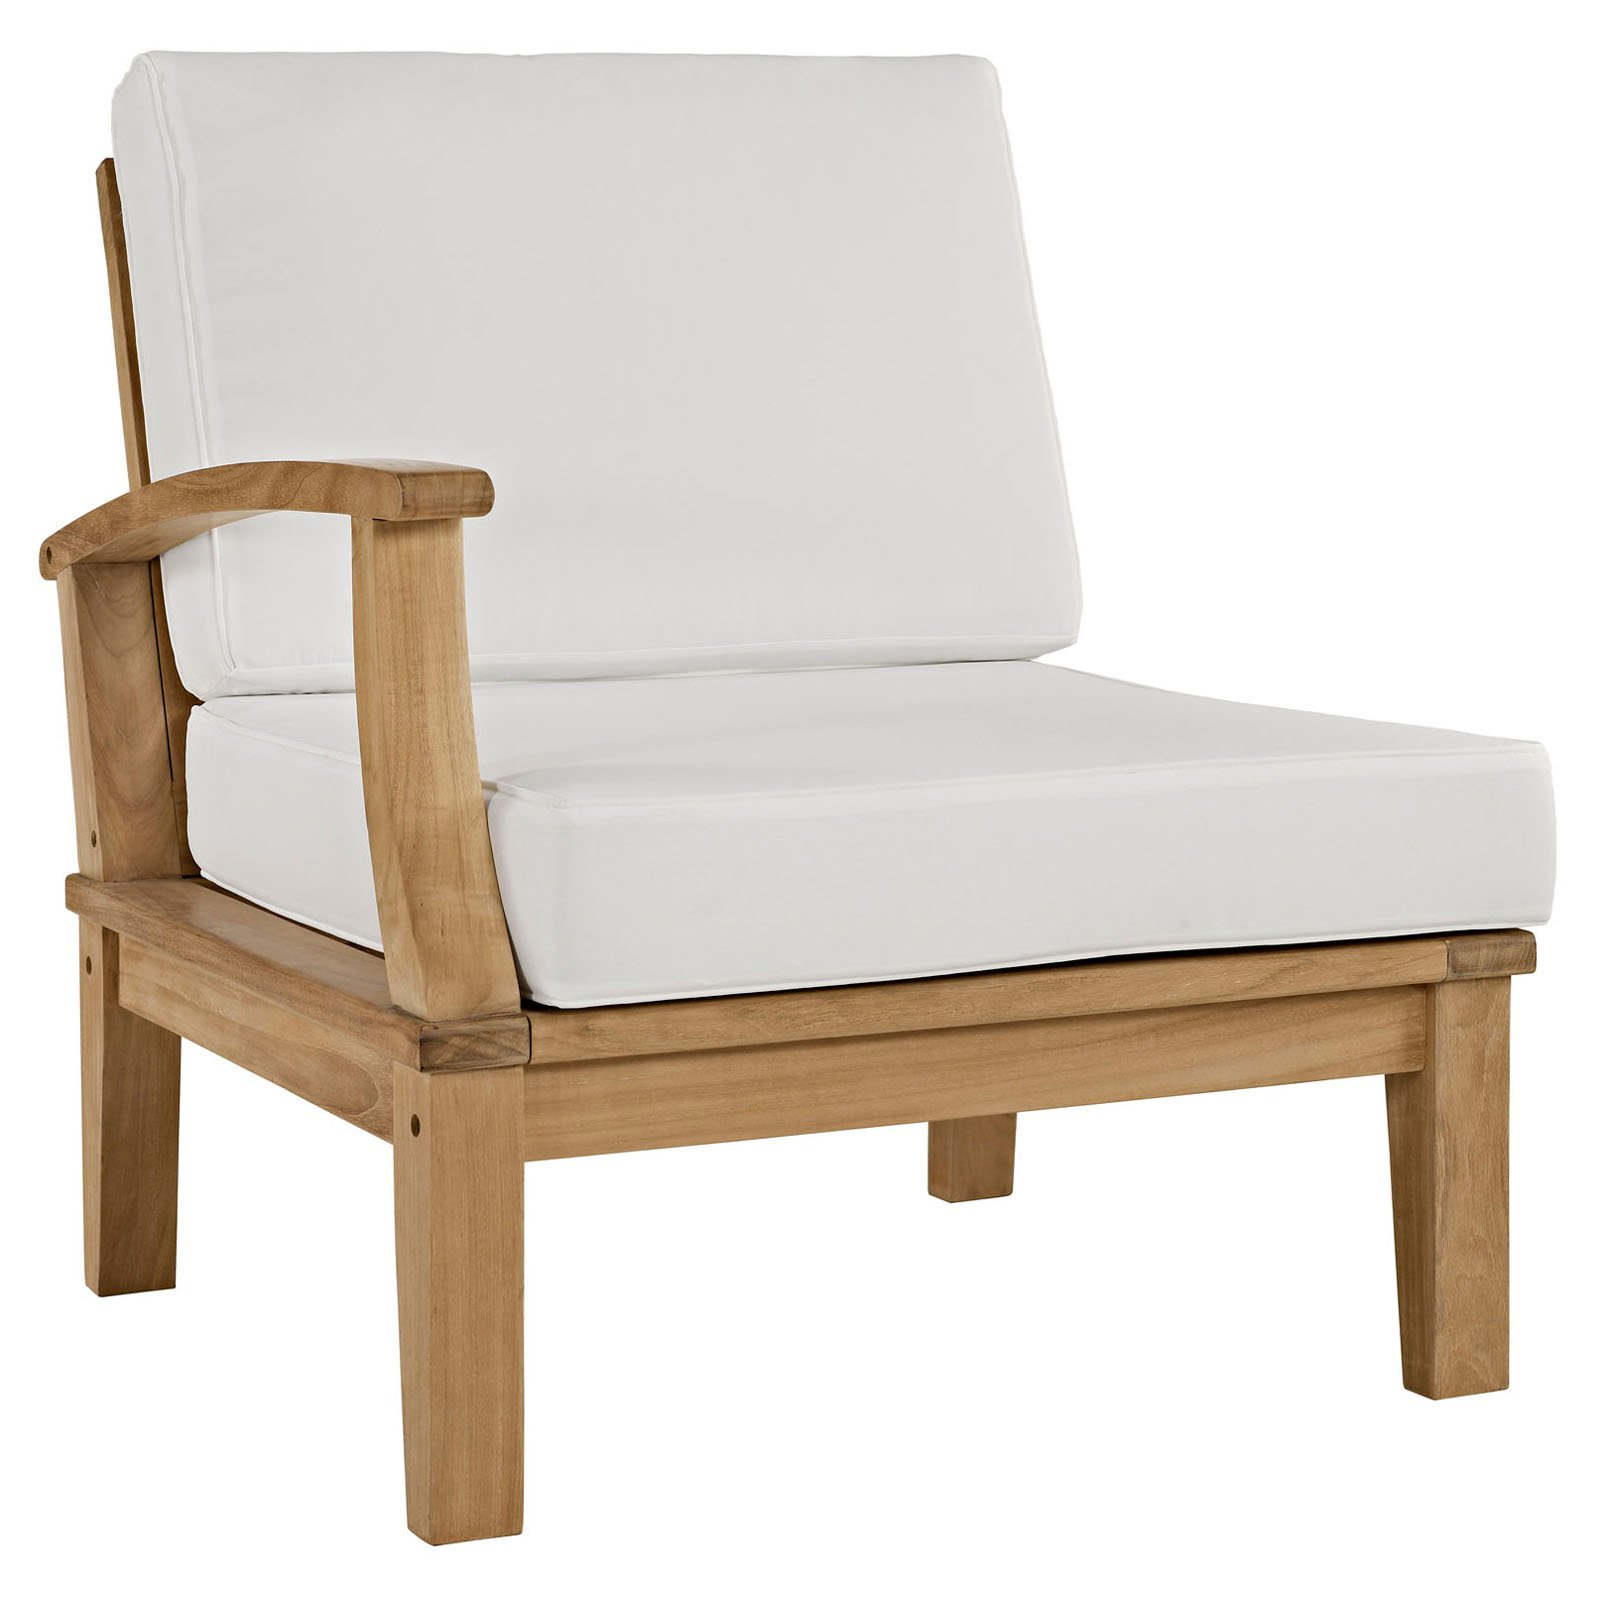 Outdoor Patio Right Arm Sofa in White